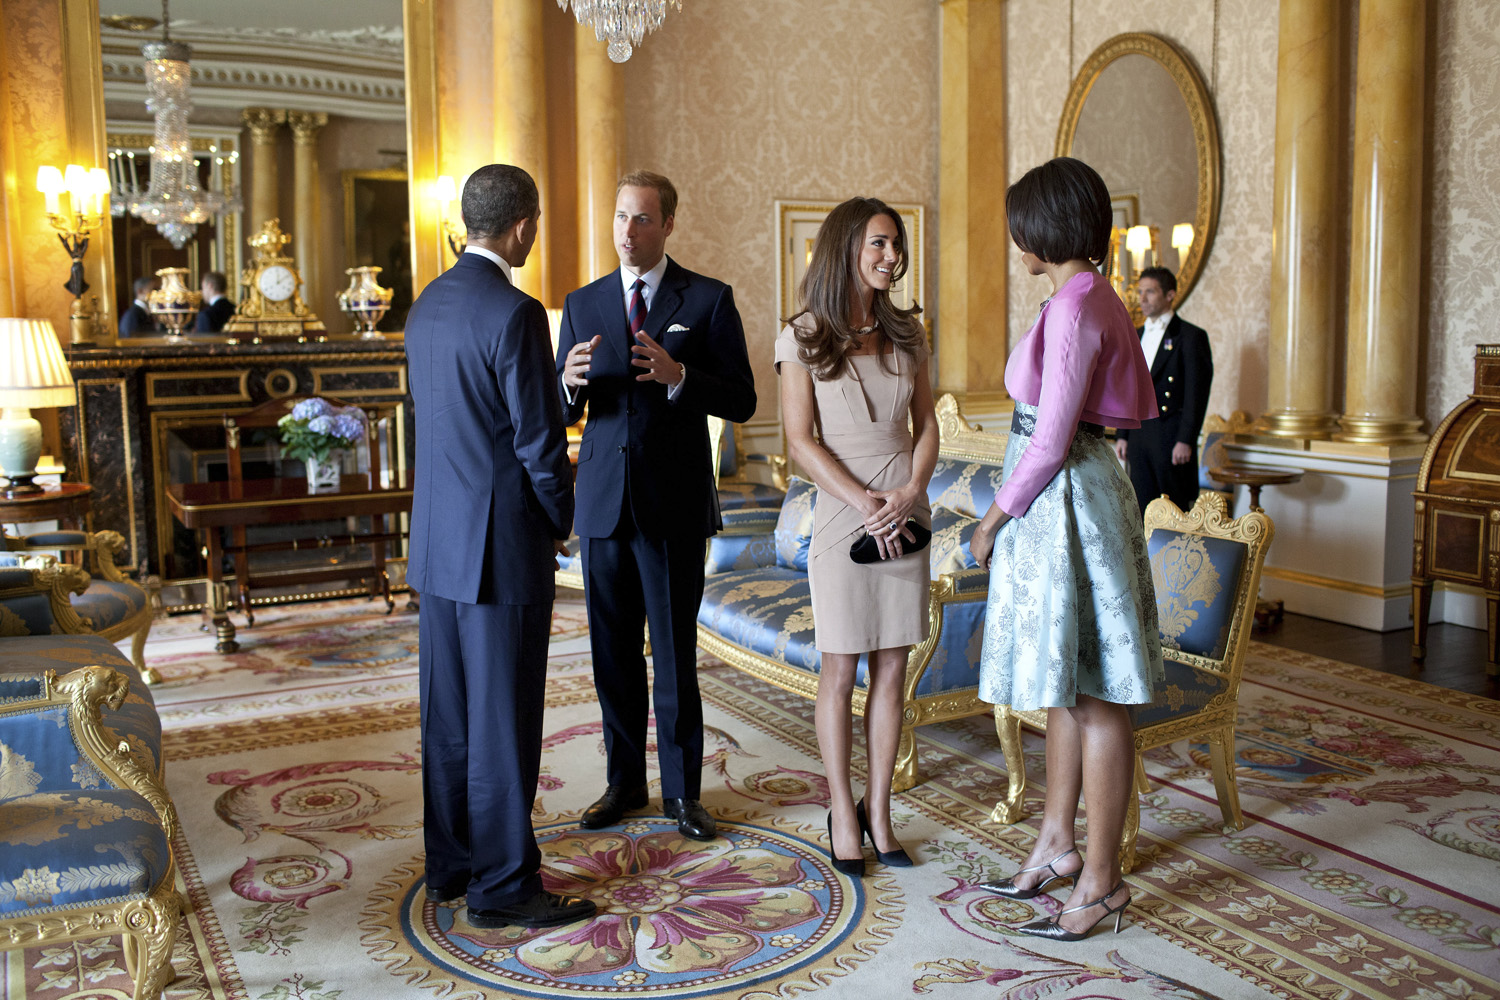 May 24, 2011. President Barack Obama and First Lady Michelle Obama talk with the Duke and Duchess of Cambridge in the 1844 Room at Buckingham Palace in London, England.